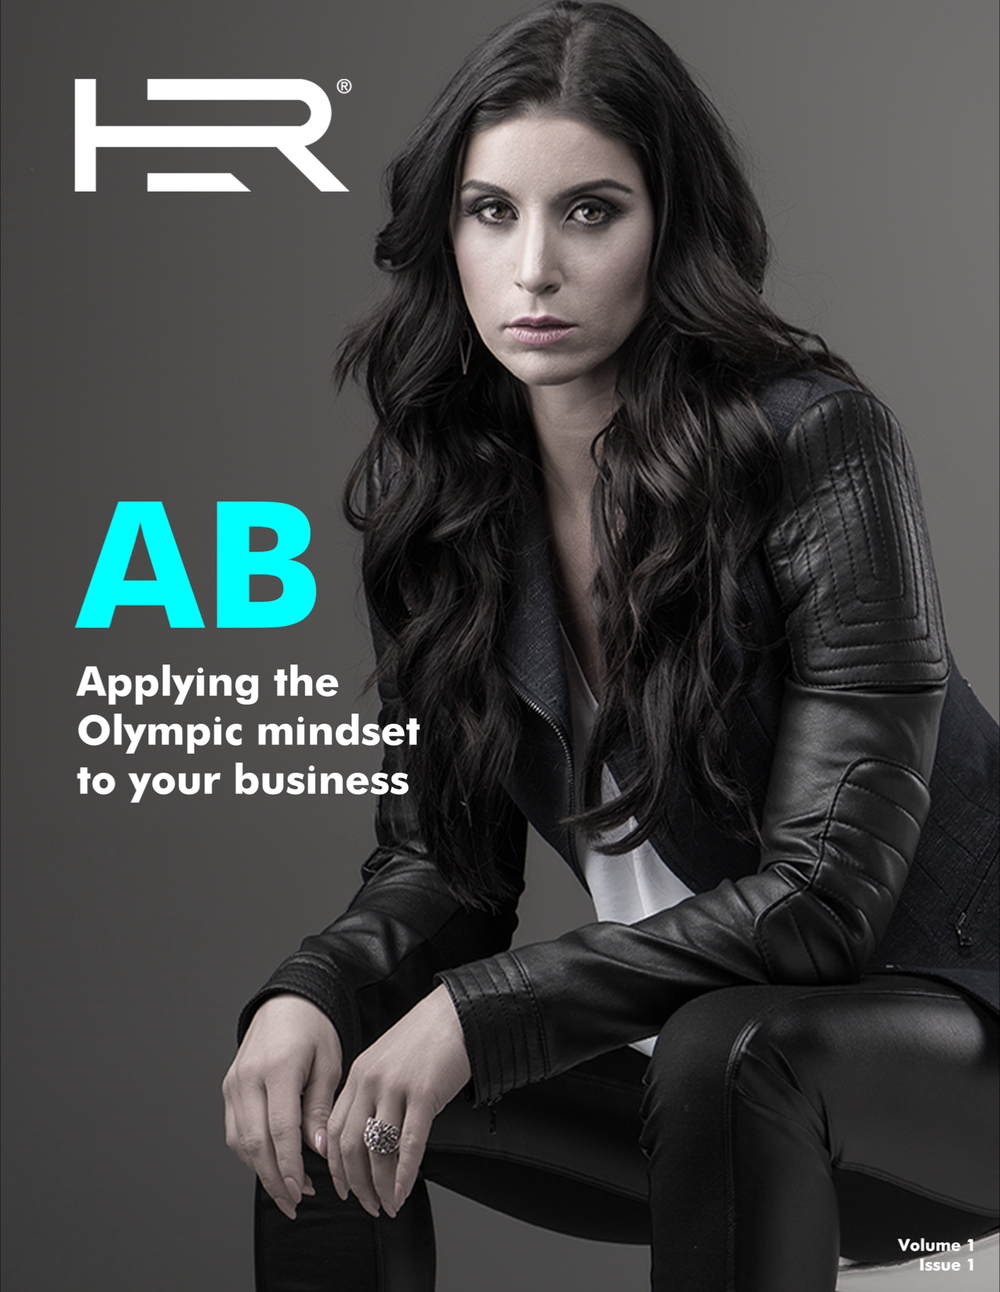 Excited to share with you this teaser to my cover story for HER Magazine! Please download the HER Magazine App for the full story at the link below.  Also, a big hug to the Editor in Chief, Nineveh Madsen for choosing me as the cover model for her fabulous relaunch.  #BossBabes4Life Visit HerMag.co to find out more: http://hermag.co/becoming-a-champion-profiling-olympic-medalist-allison-baver/